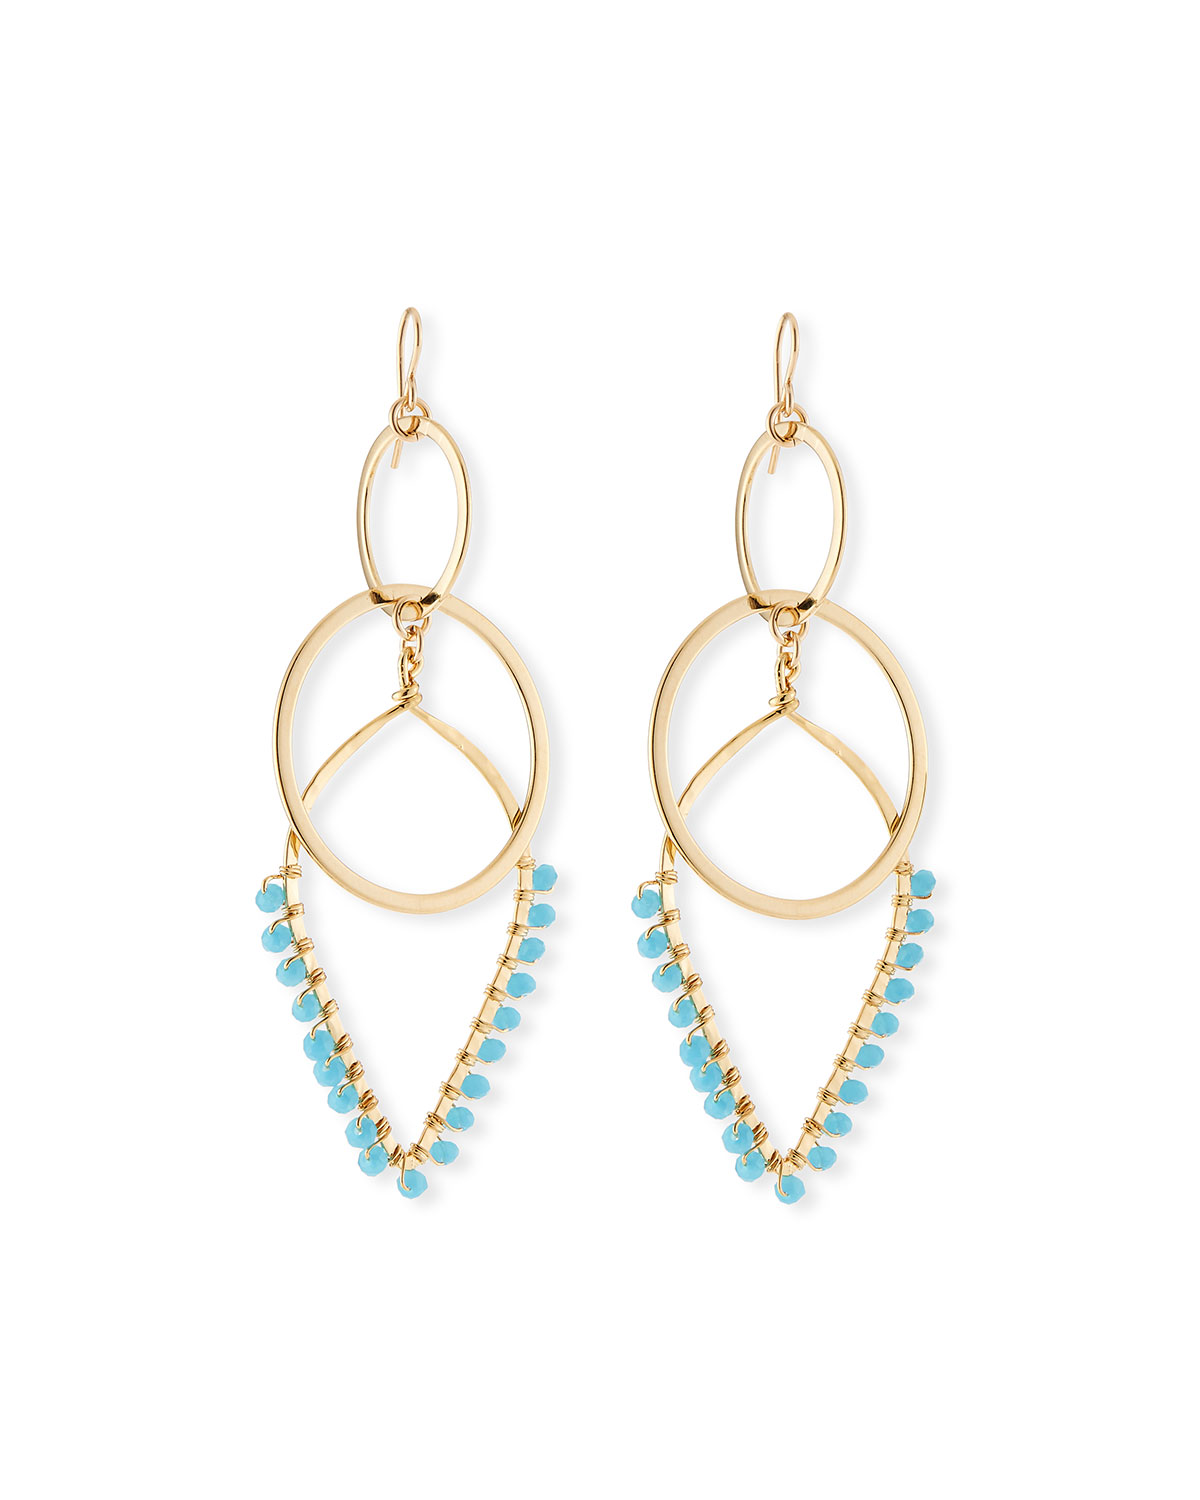 Devon Leigh Teardrop Double-Link Earrings F78Mx0